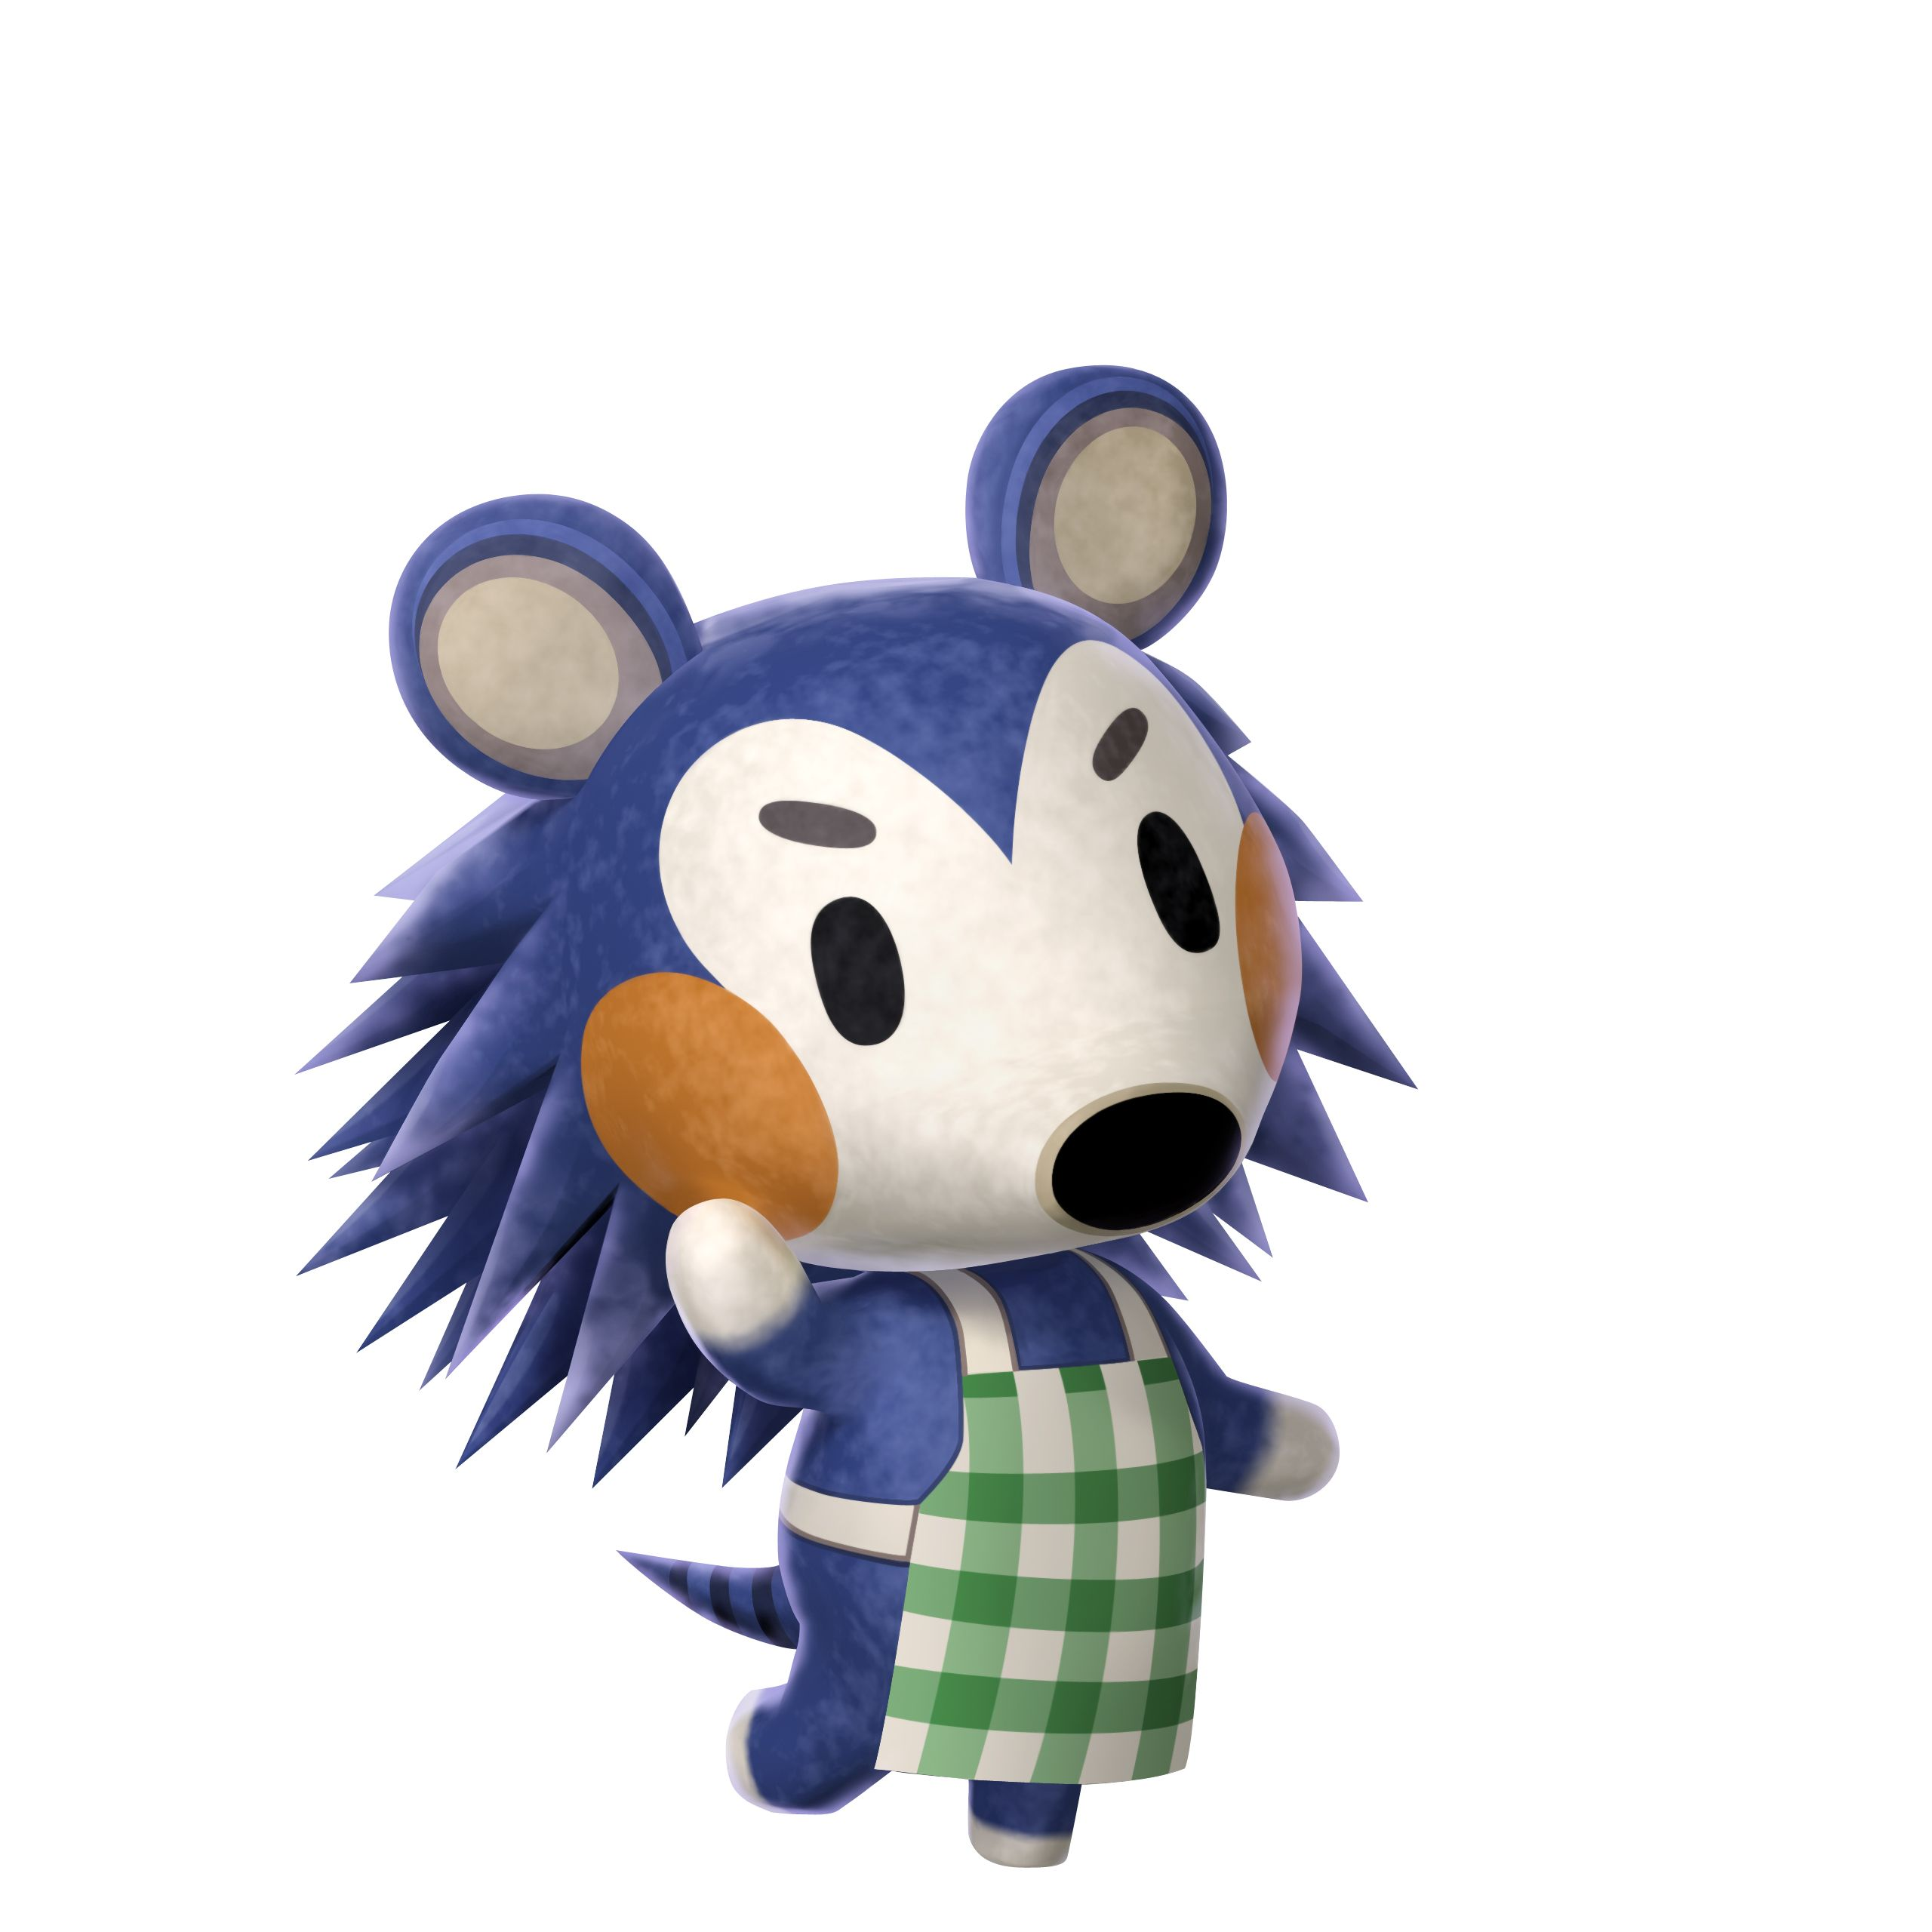 animal crossing characters - Google Search | Animal ...